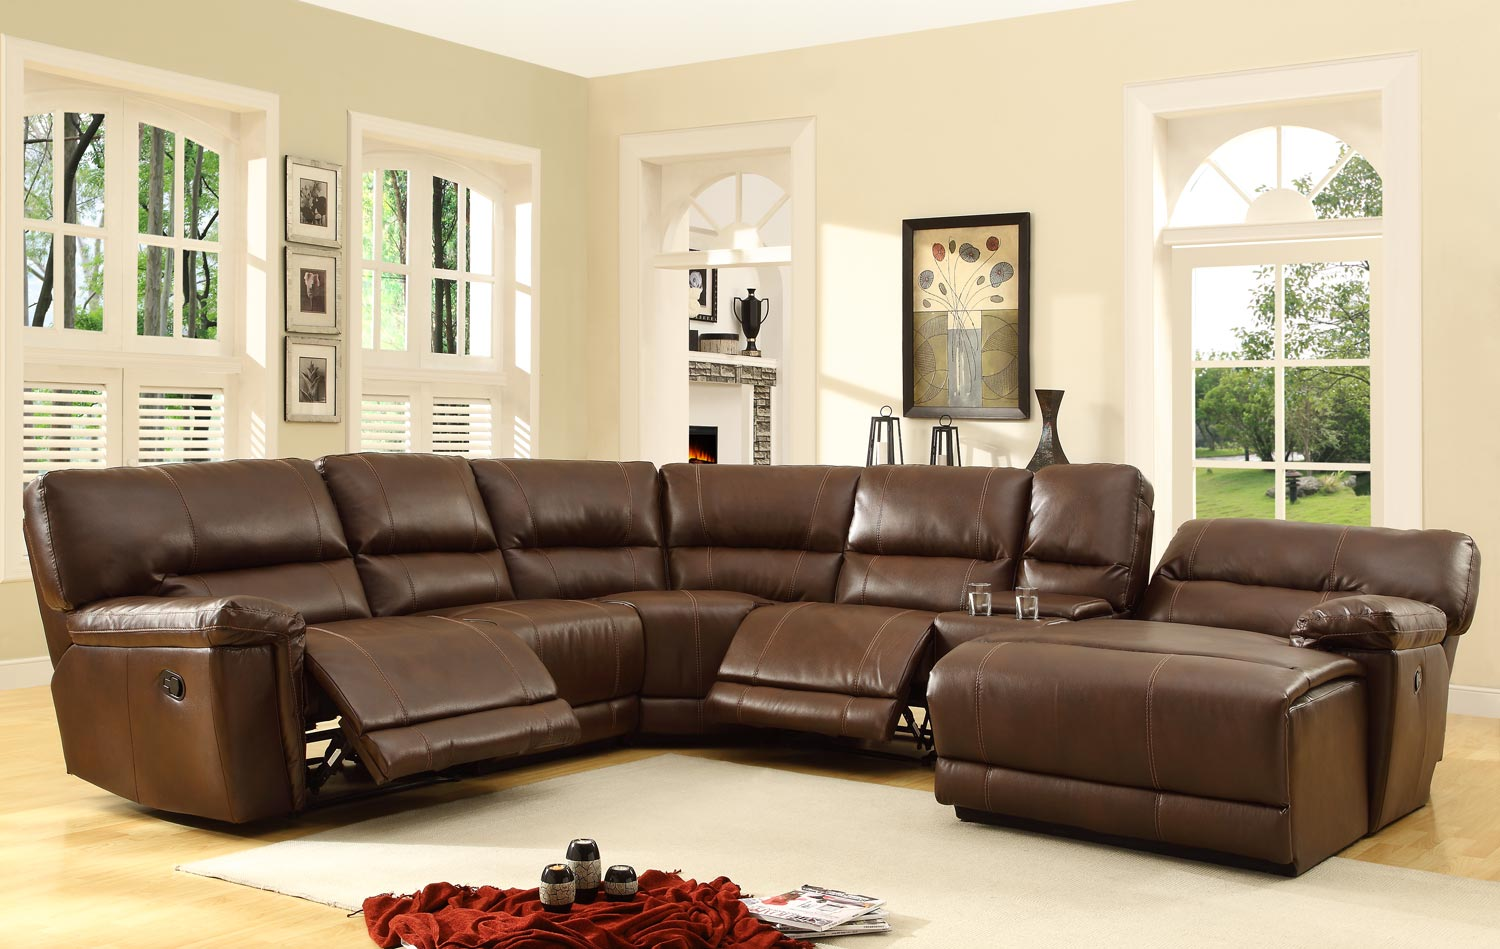 leather sectional sofa with chaise and recliner homelegance blythe sectional sofa set - brown - bonded leather HEILZNJ